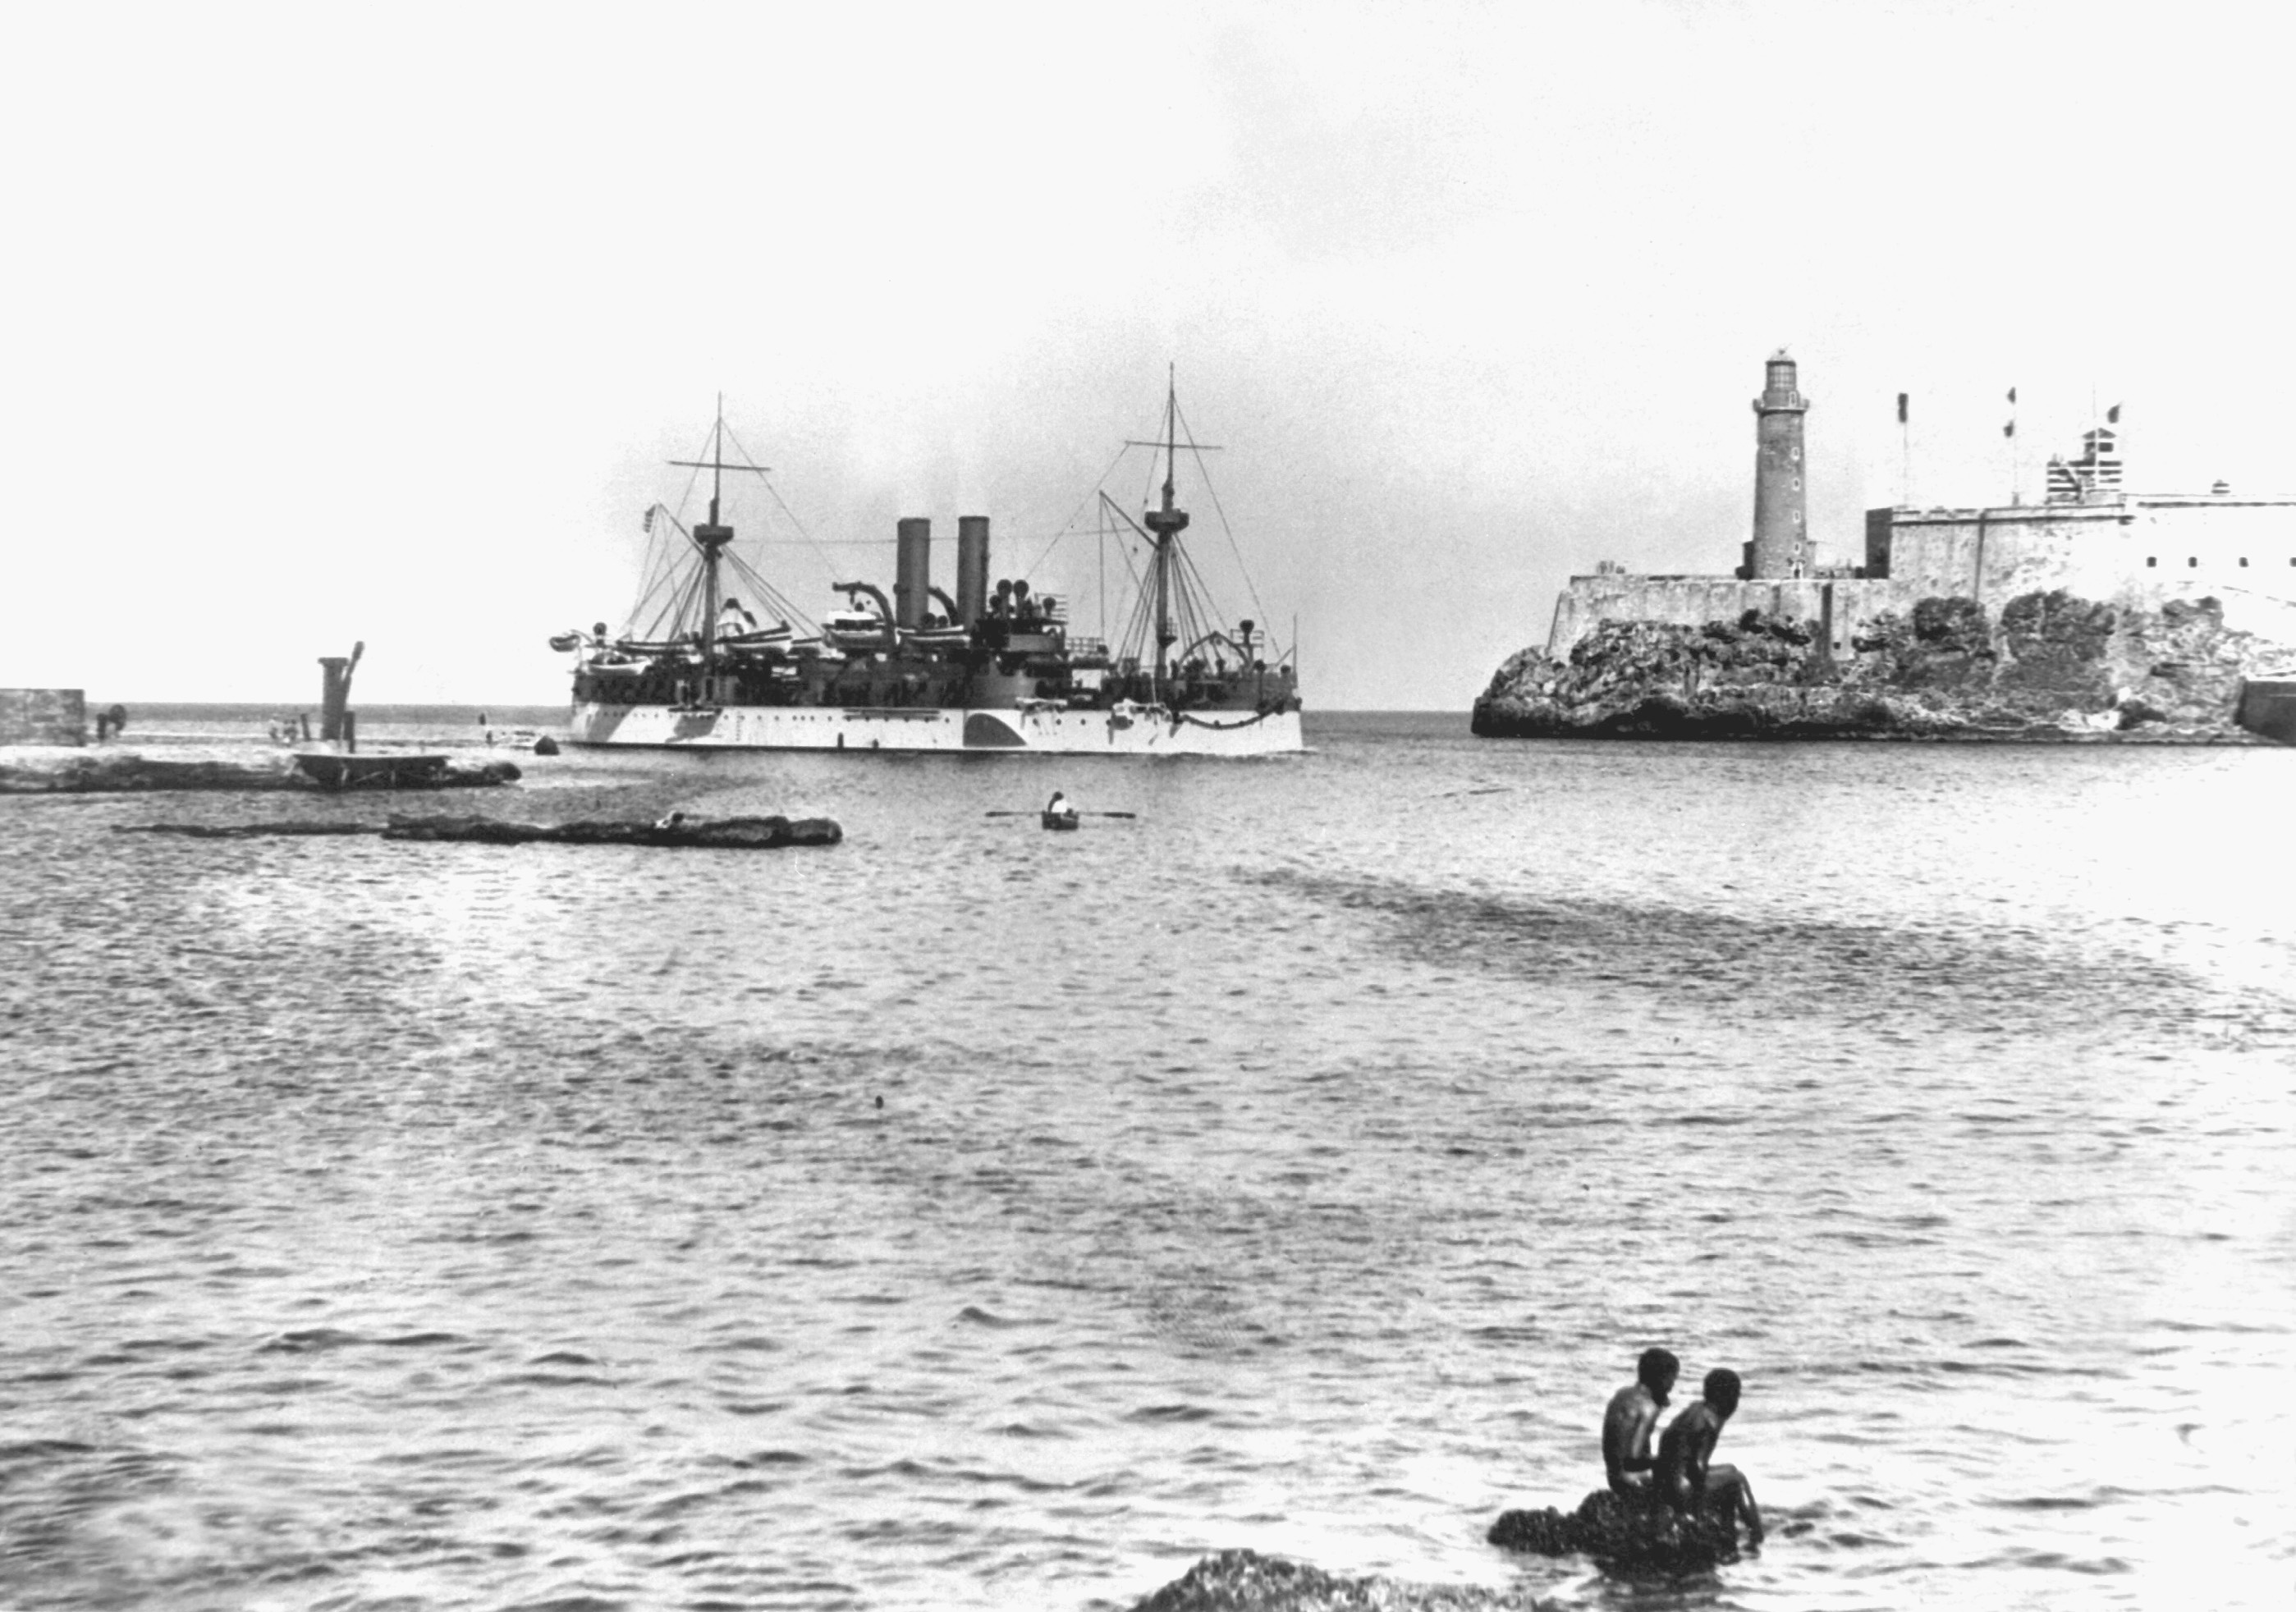 USS Maine entering Havana Harbor on 25 January 1898, where the ship would explode three weeks later. On the right is the old Morro Castle fortress.